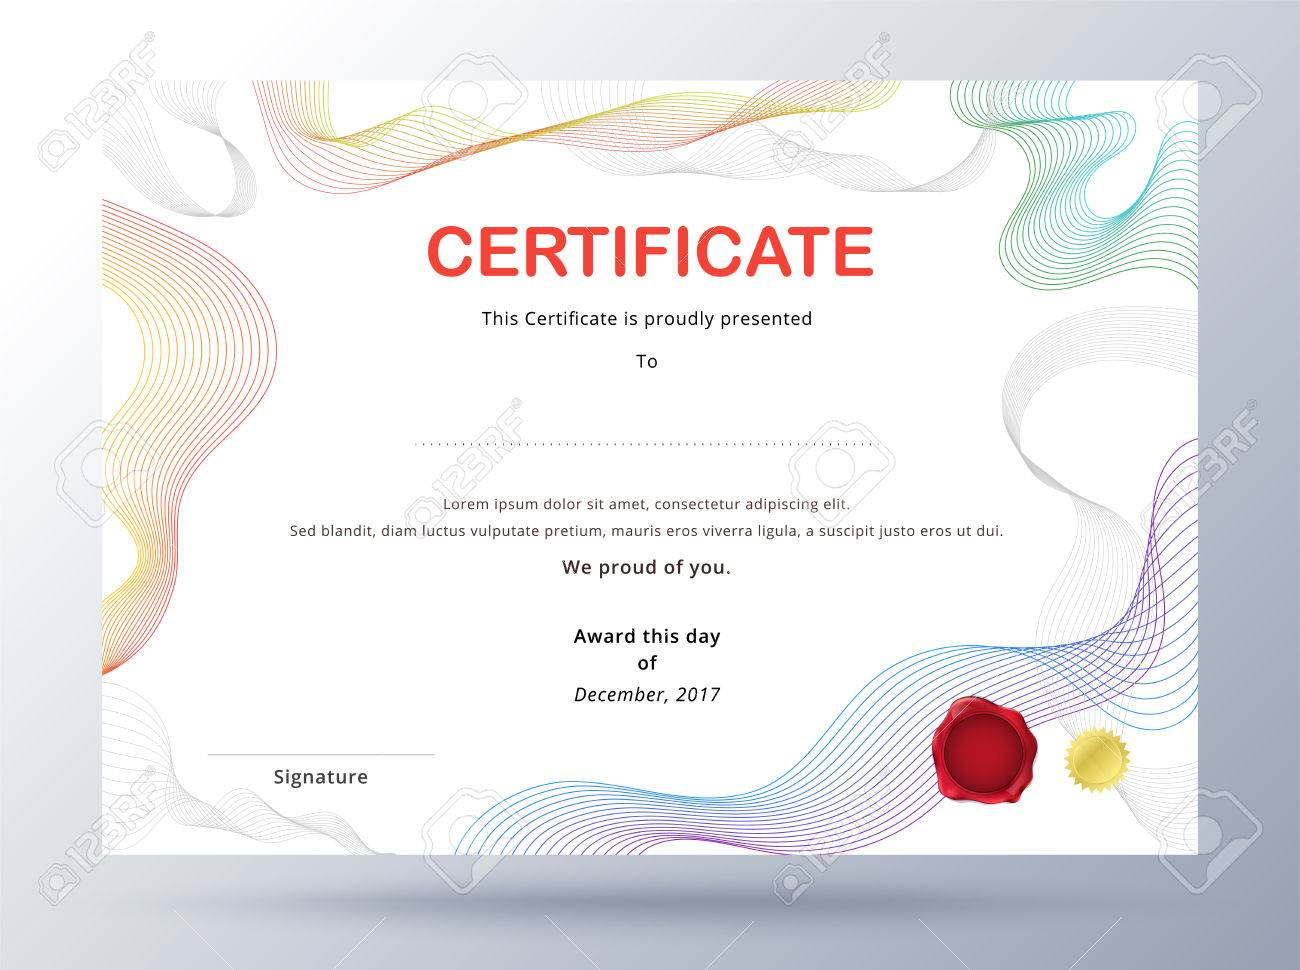 Free business certificate templates blank bill of lading forms business certificate templates free prize certificate resume 84587323 certificate template design with simple concept colorful business yadclub Image collections